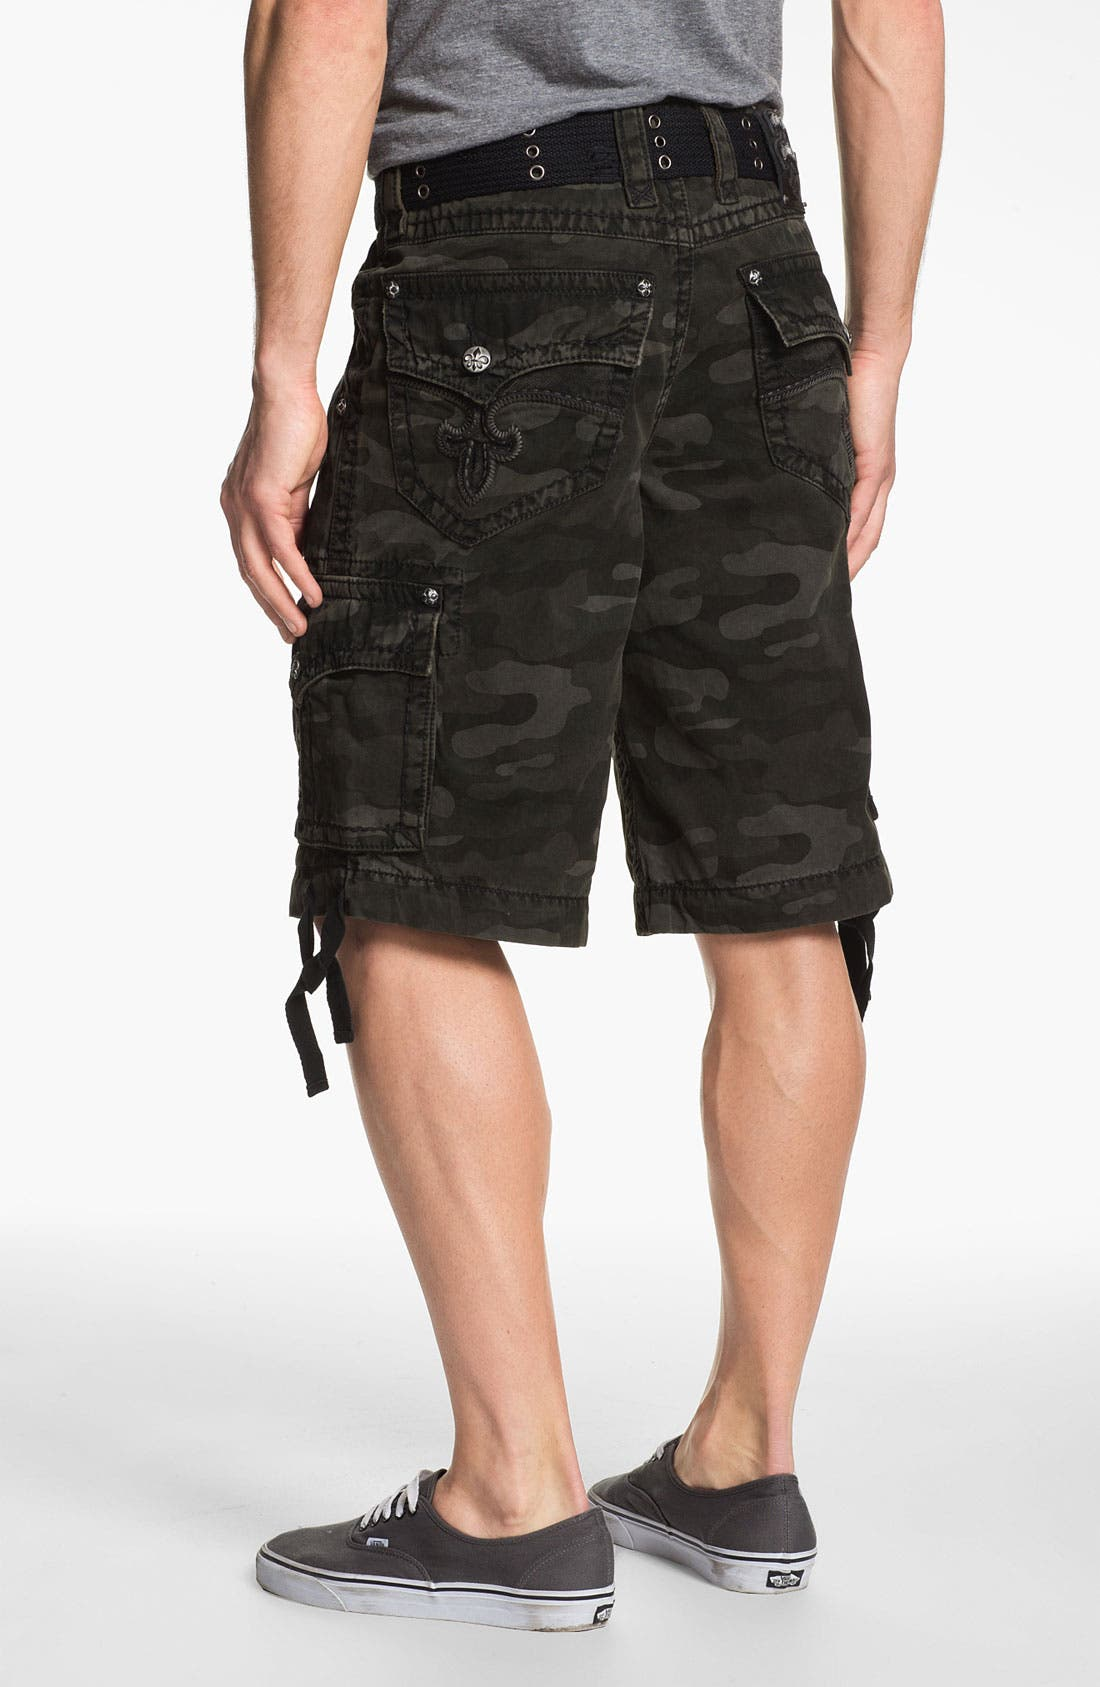 Alternate Image 1 Selected - Rock Revival Camo Print Cargo Shorts